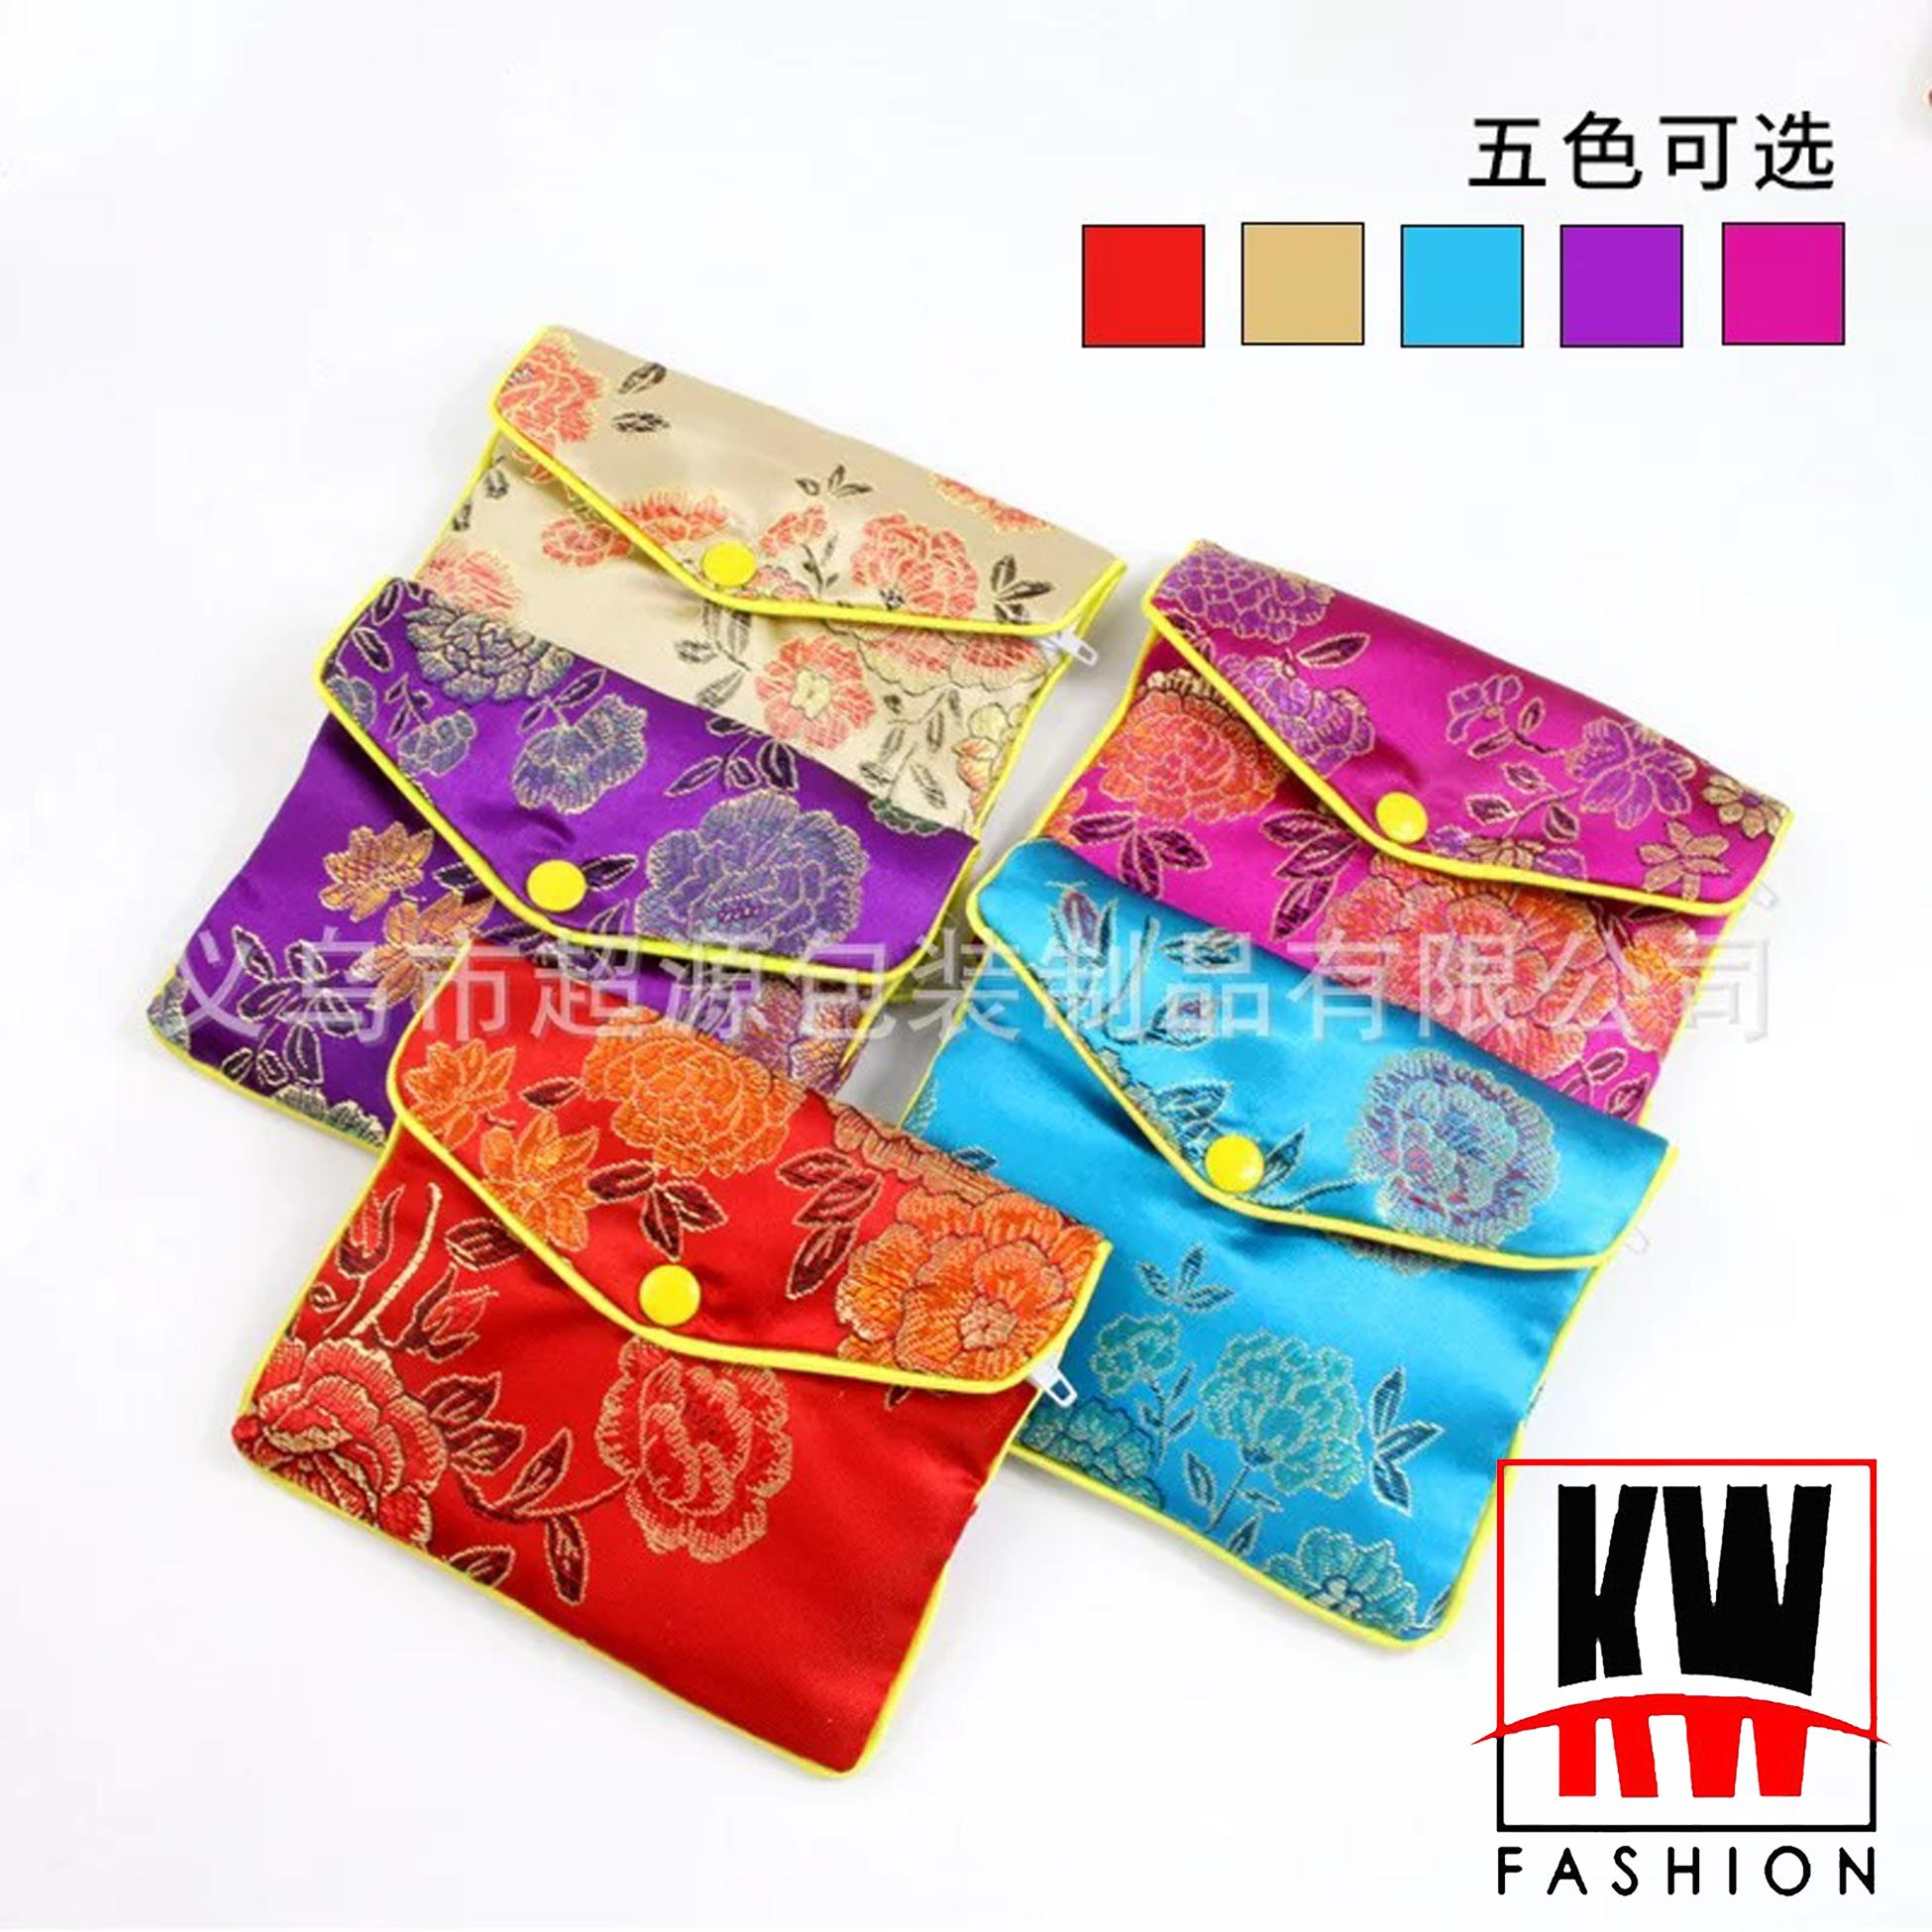 50f03865f6dab2 Gift Wrapper for sale - Gift Bags prices, brands & review in ...